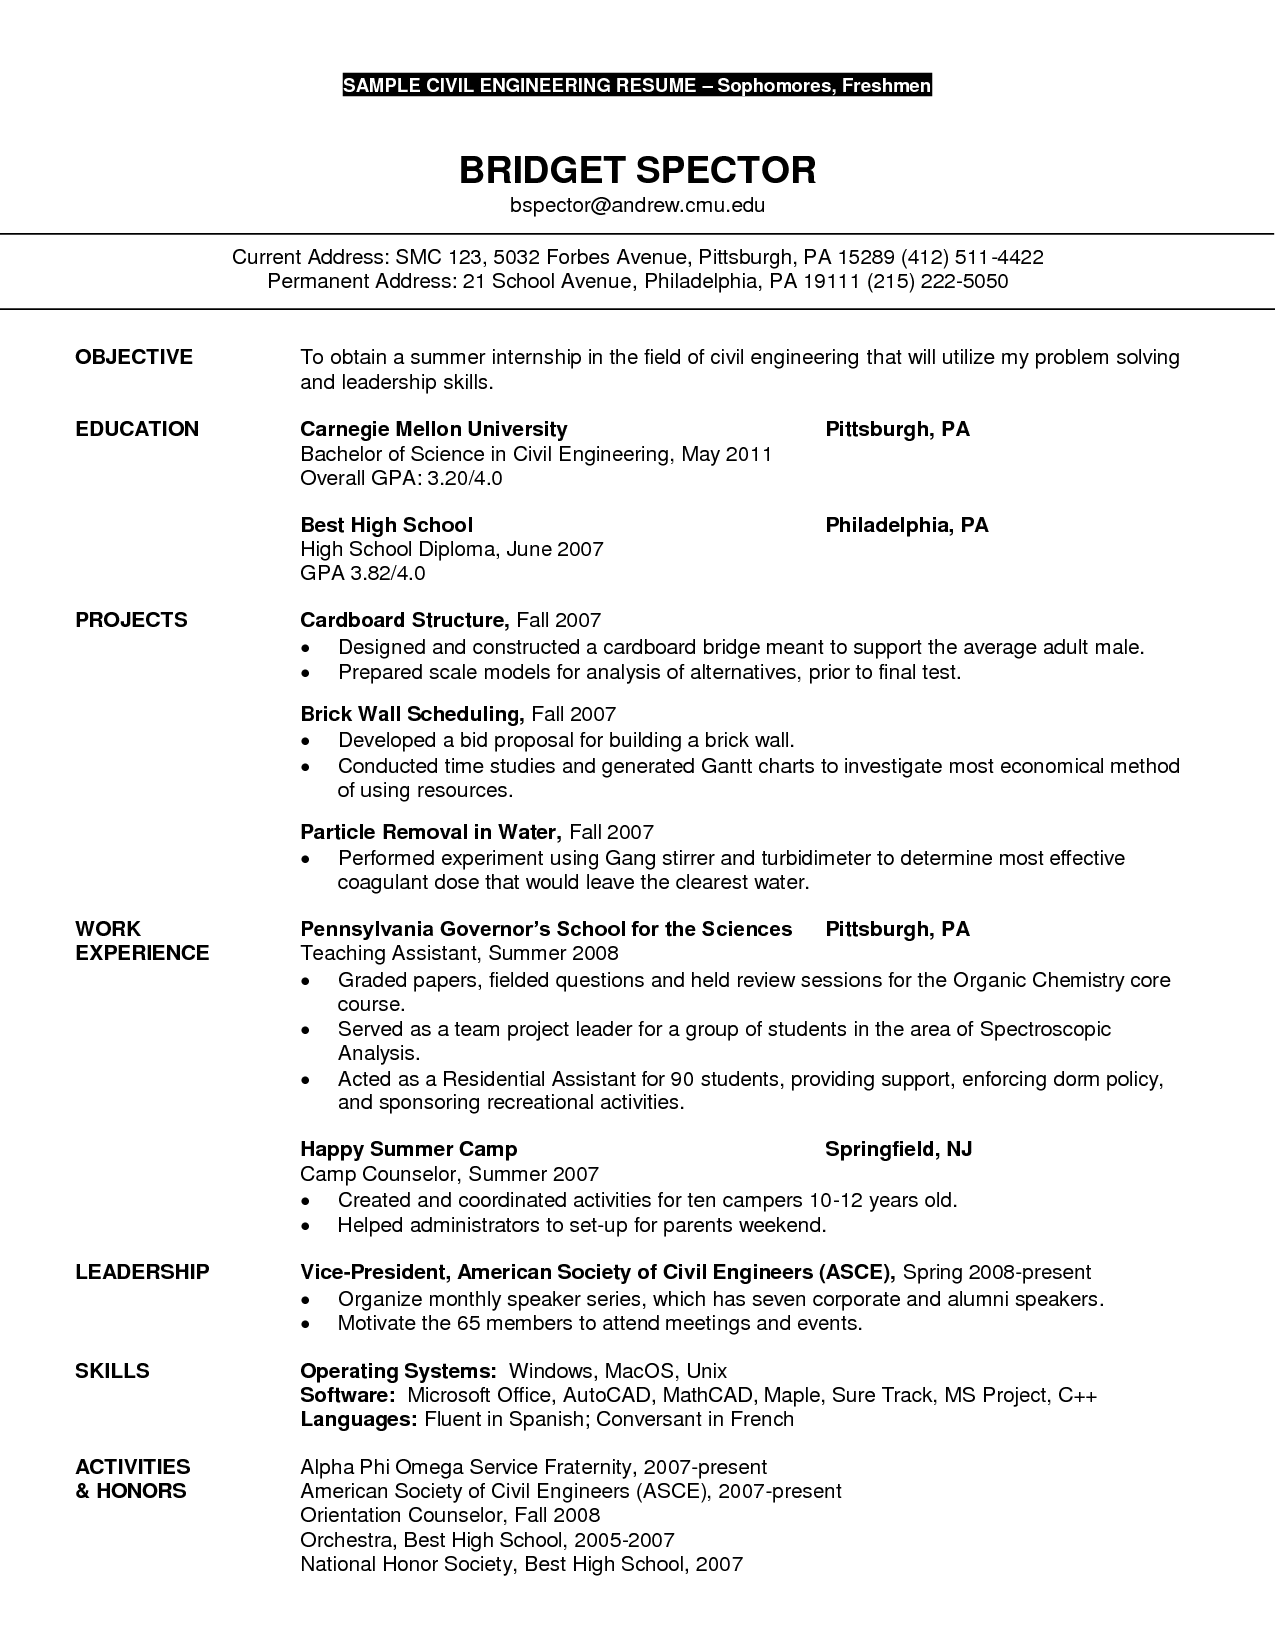 Sample Chemical Engineering Resume Civil Engineer Resume Sample Http Resumecareer